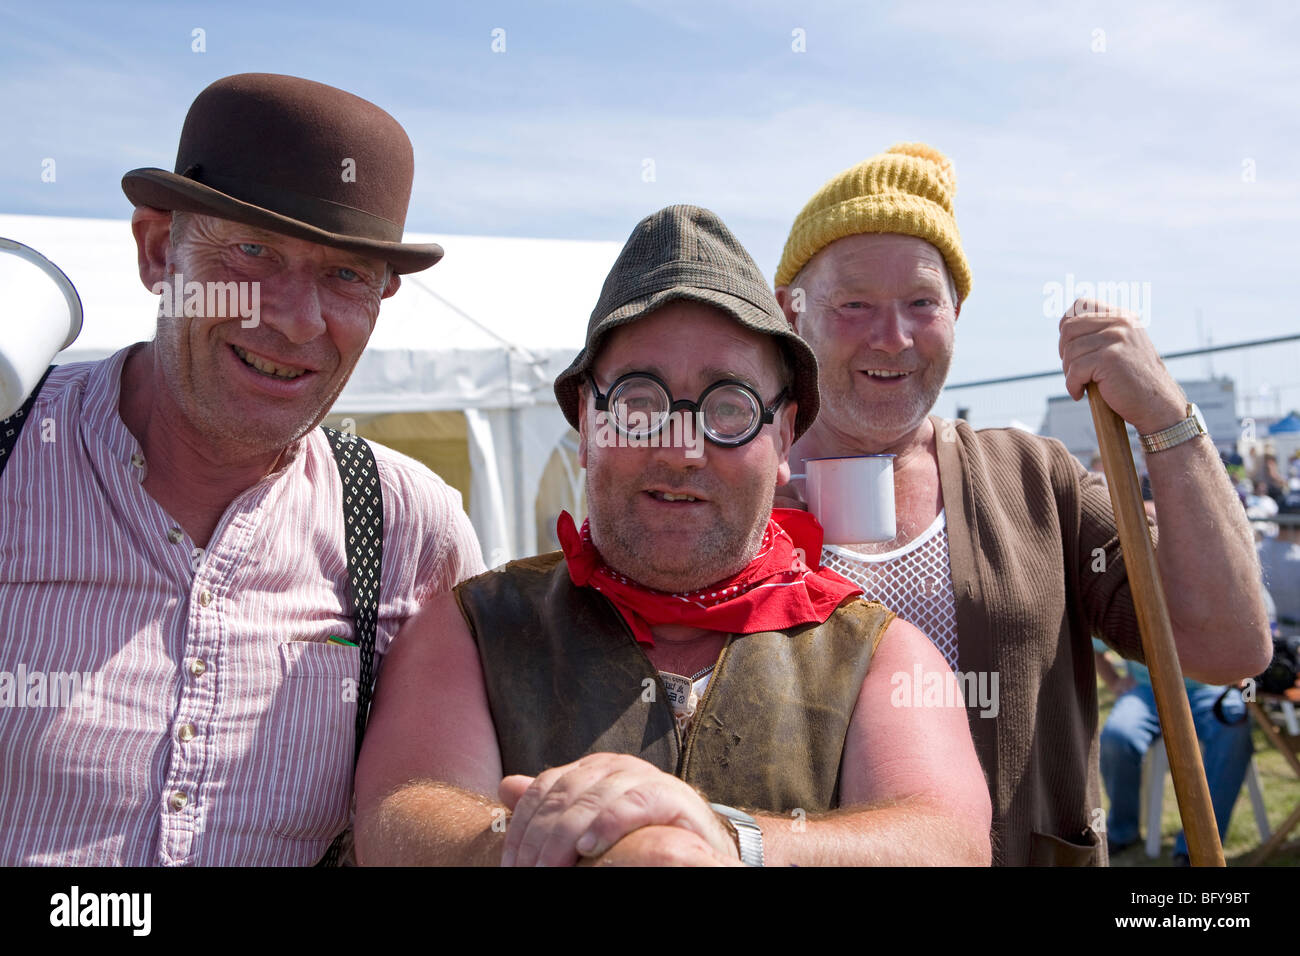 Comedy trio dressed as roadmenders at Shoreham Airshow, Shoreham Airport, Sussex, England Stock Photo